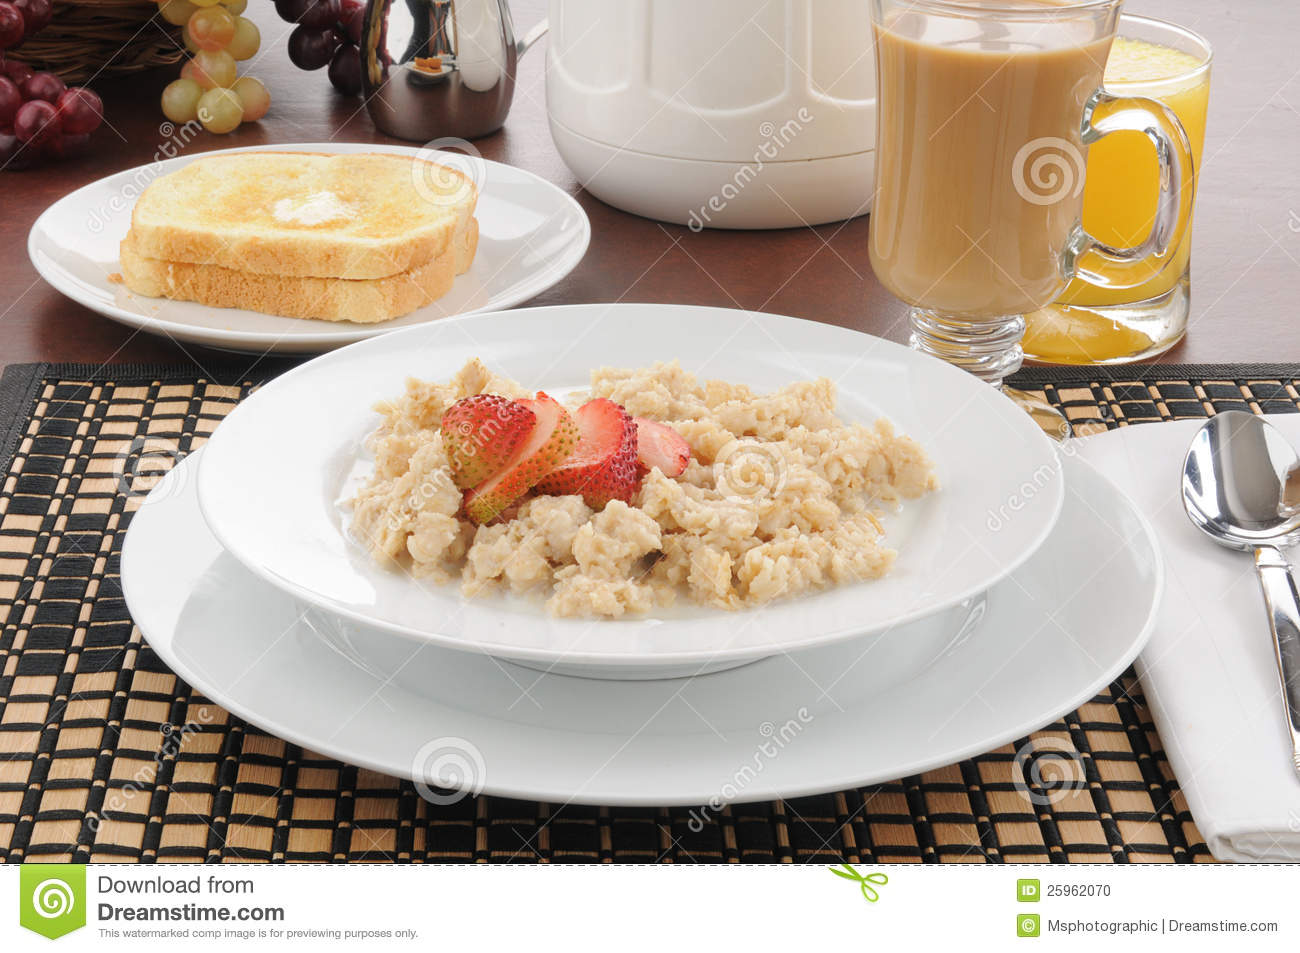 Oatmeal With Strawberries And Toast Stock Photo - Image: 25962070